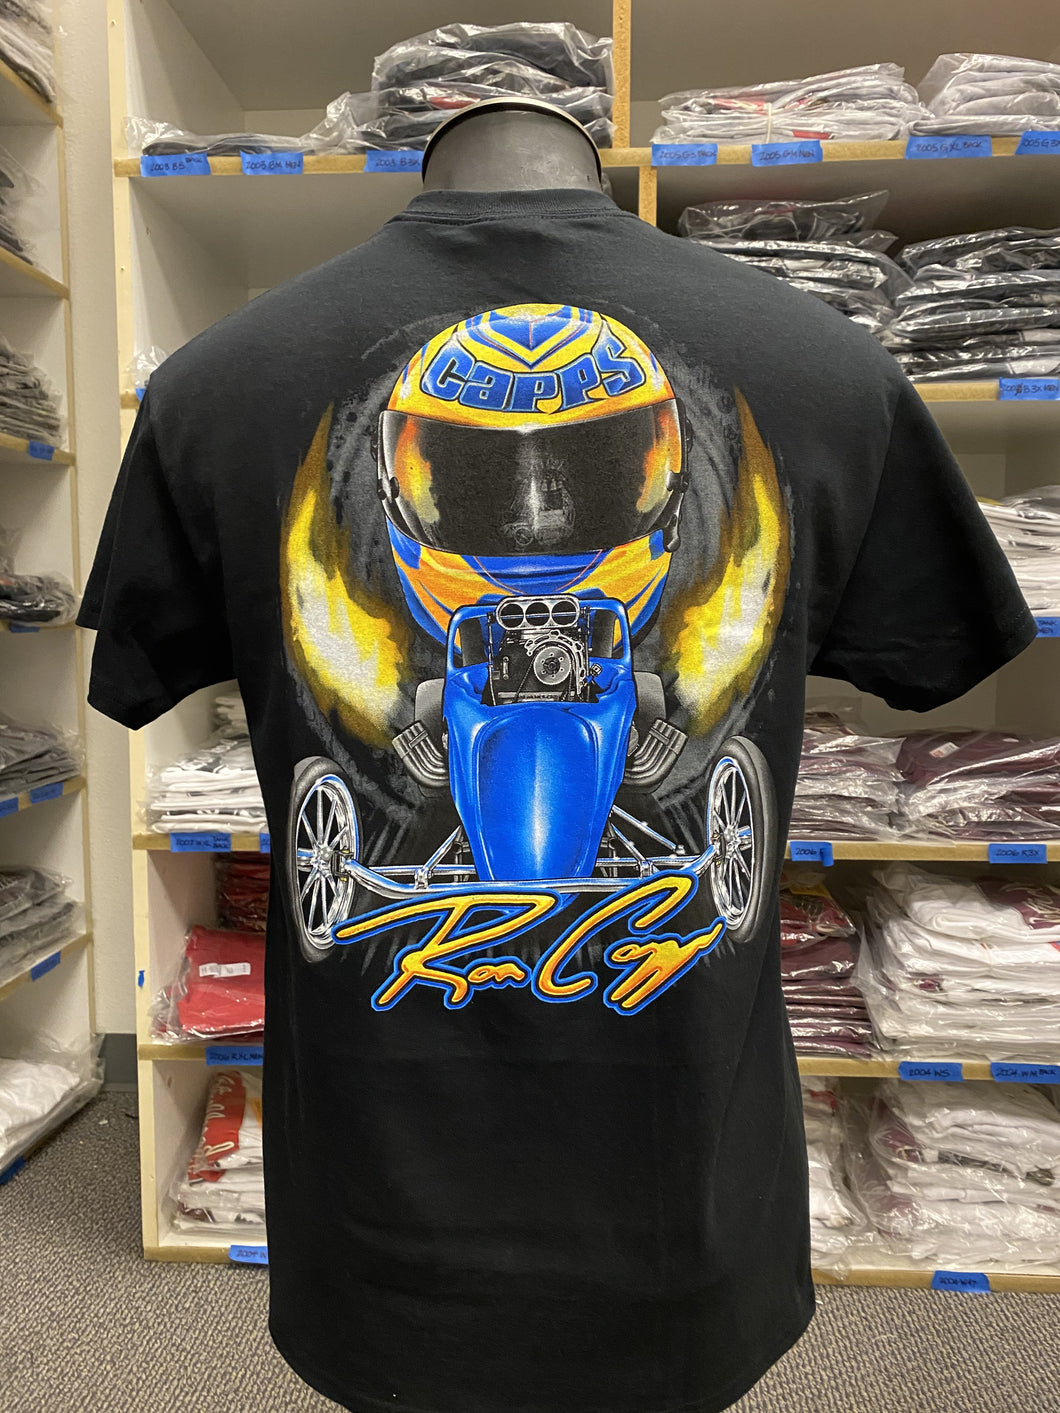 Ron Capps Fuel Altered Men's Tee Black